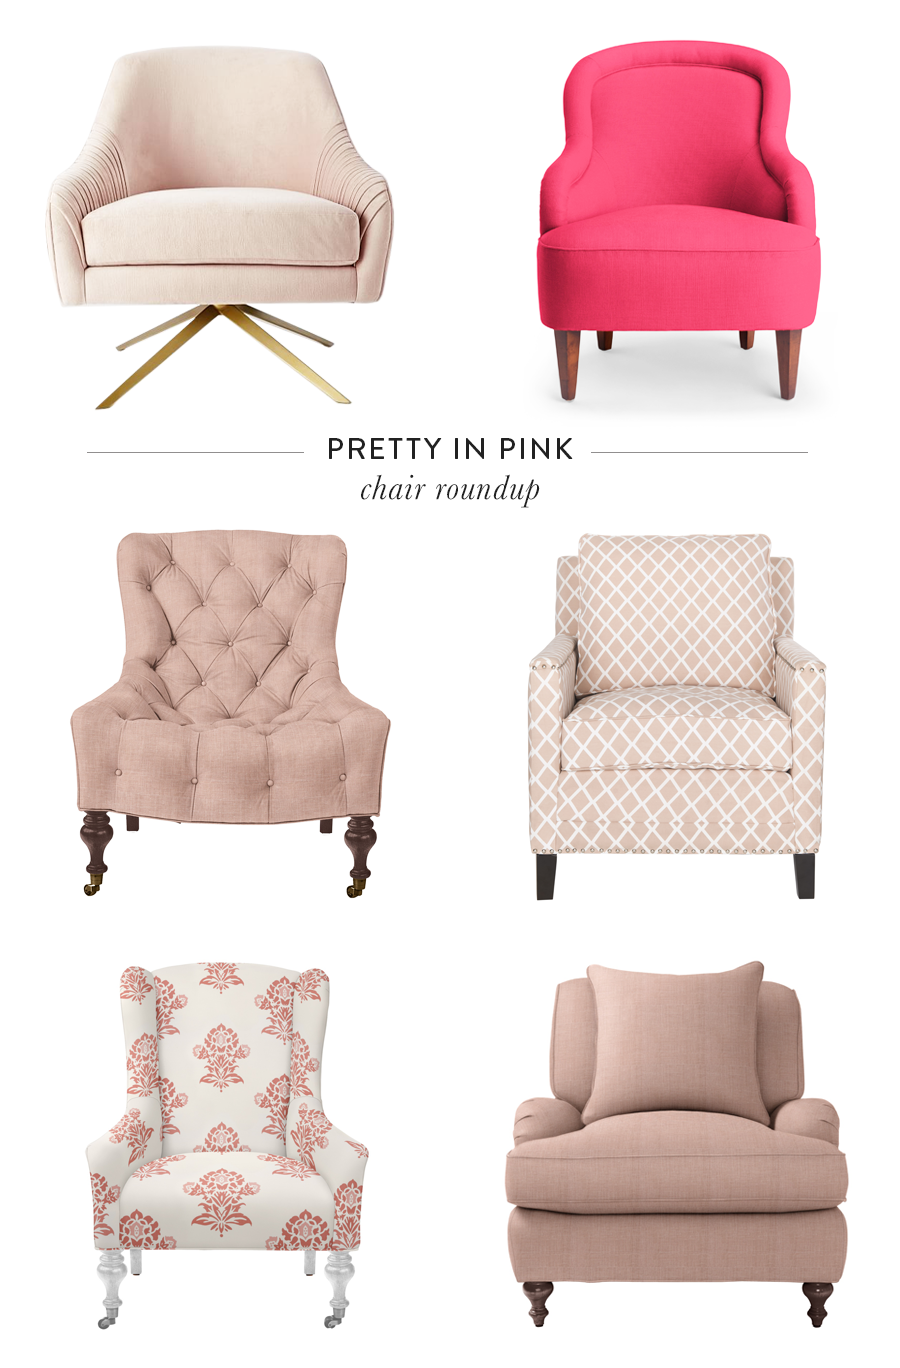 12 Pink Chairs That Steal the Show | Pink chairs, Interiors and ...